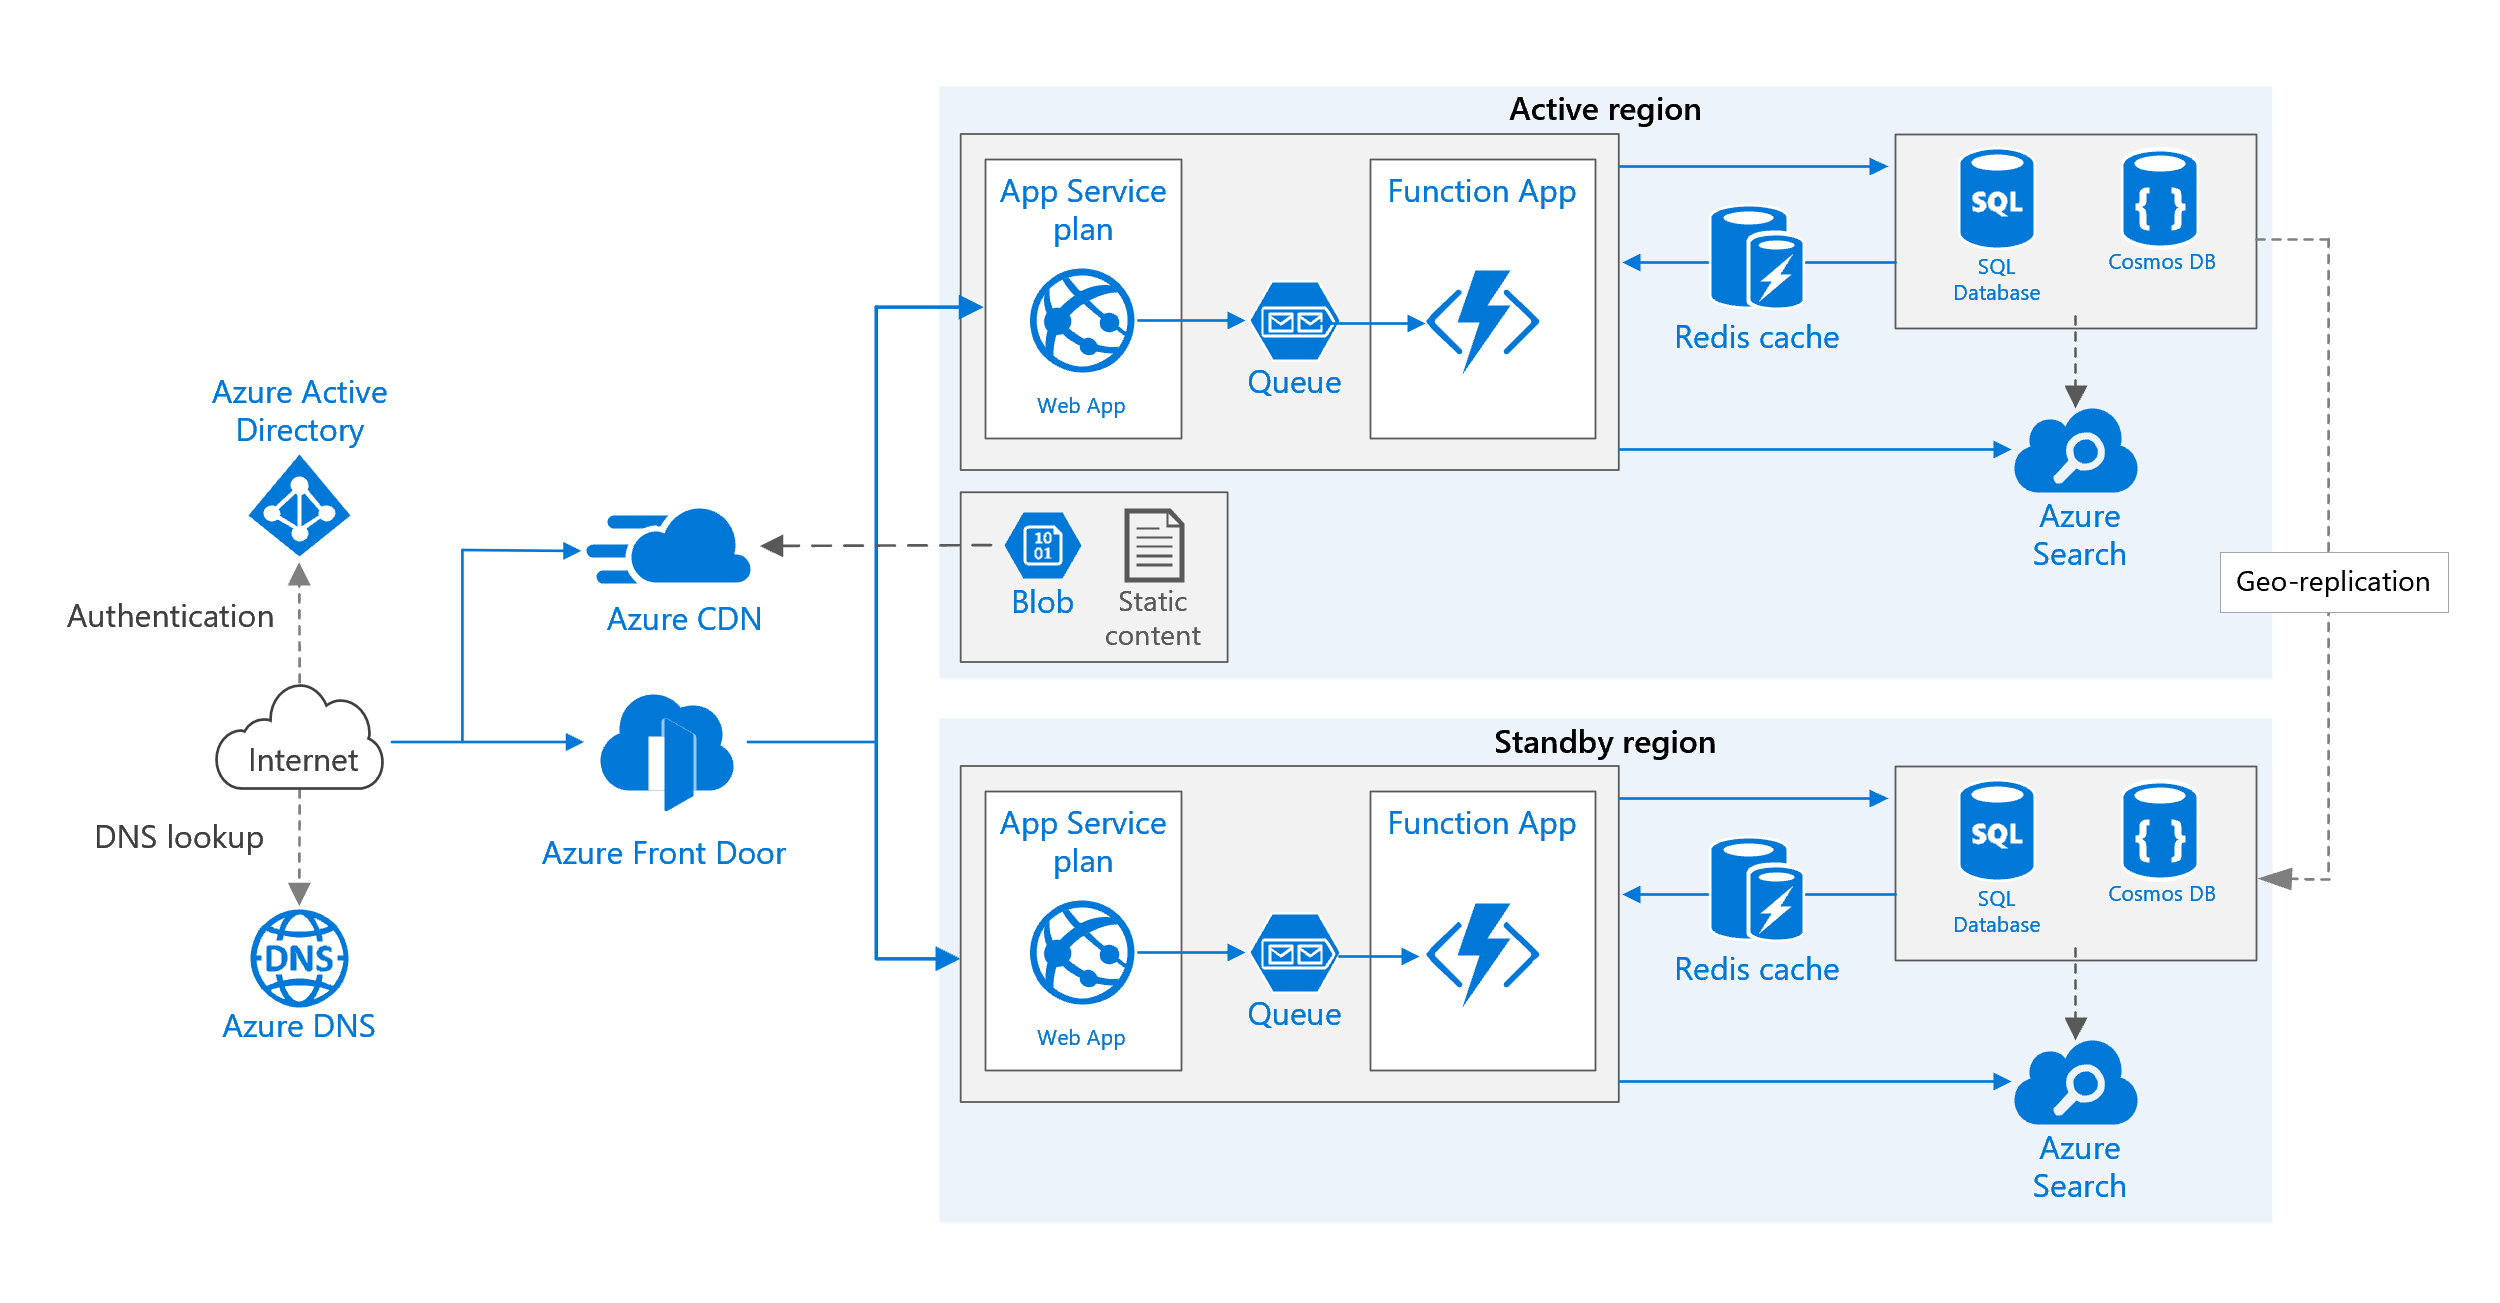 Highly available multi-region web application - Azure Reference